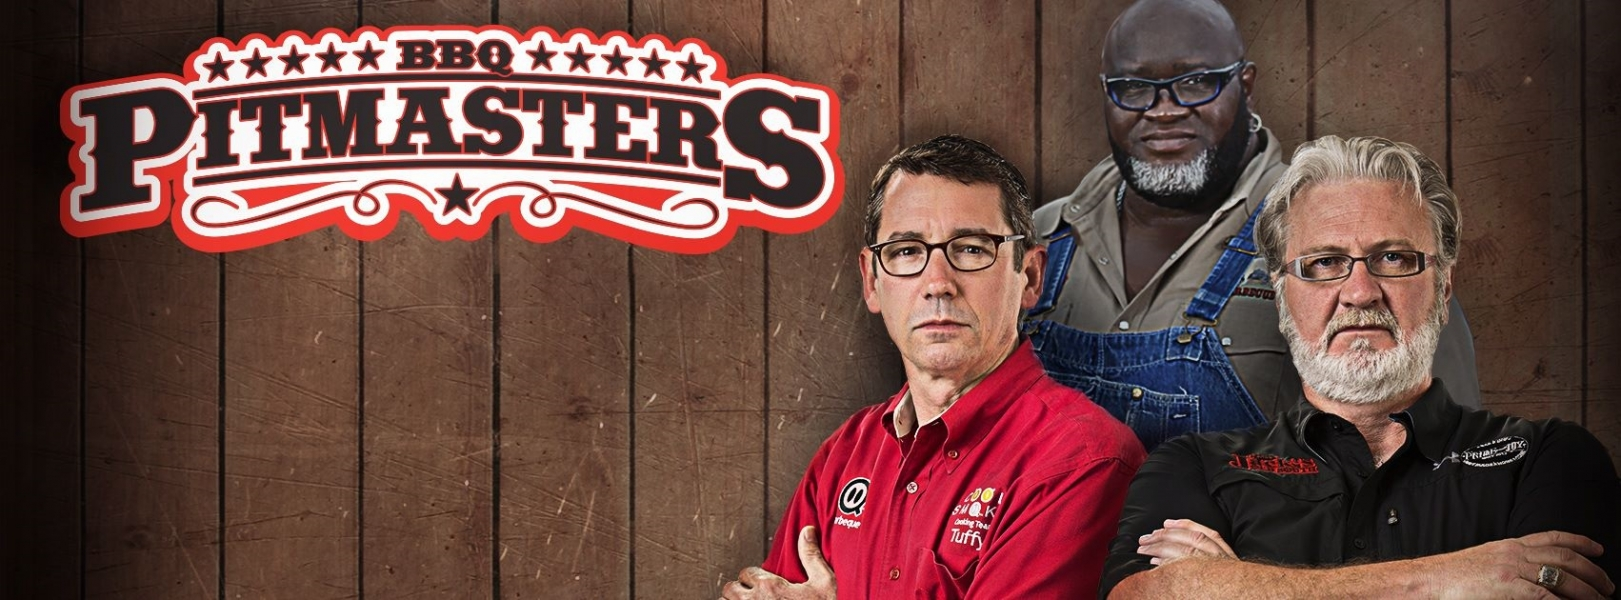 Pitmasters BBQ Cook-Off at Sugden Regional Park